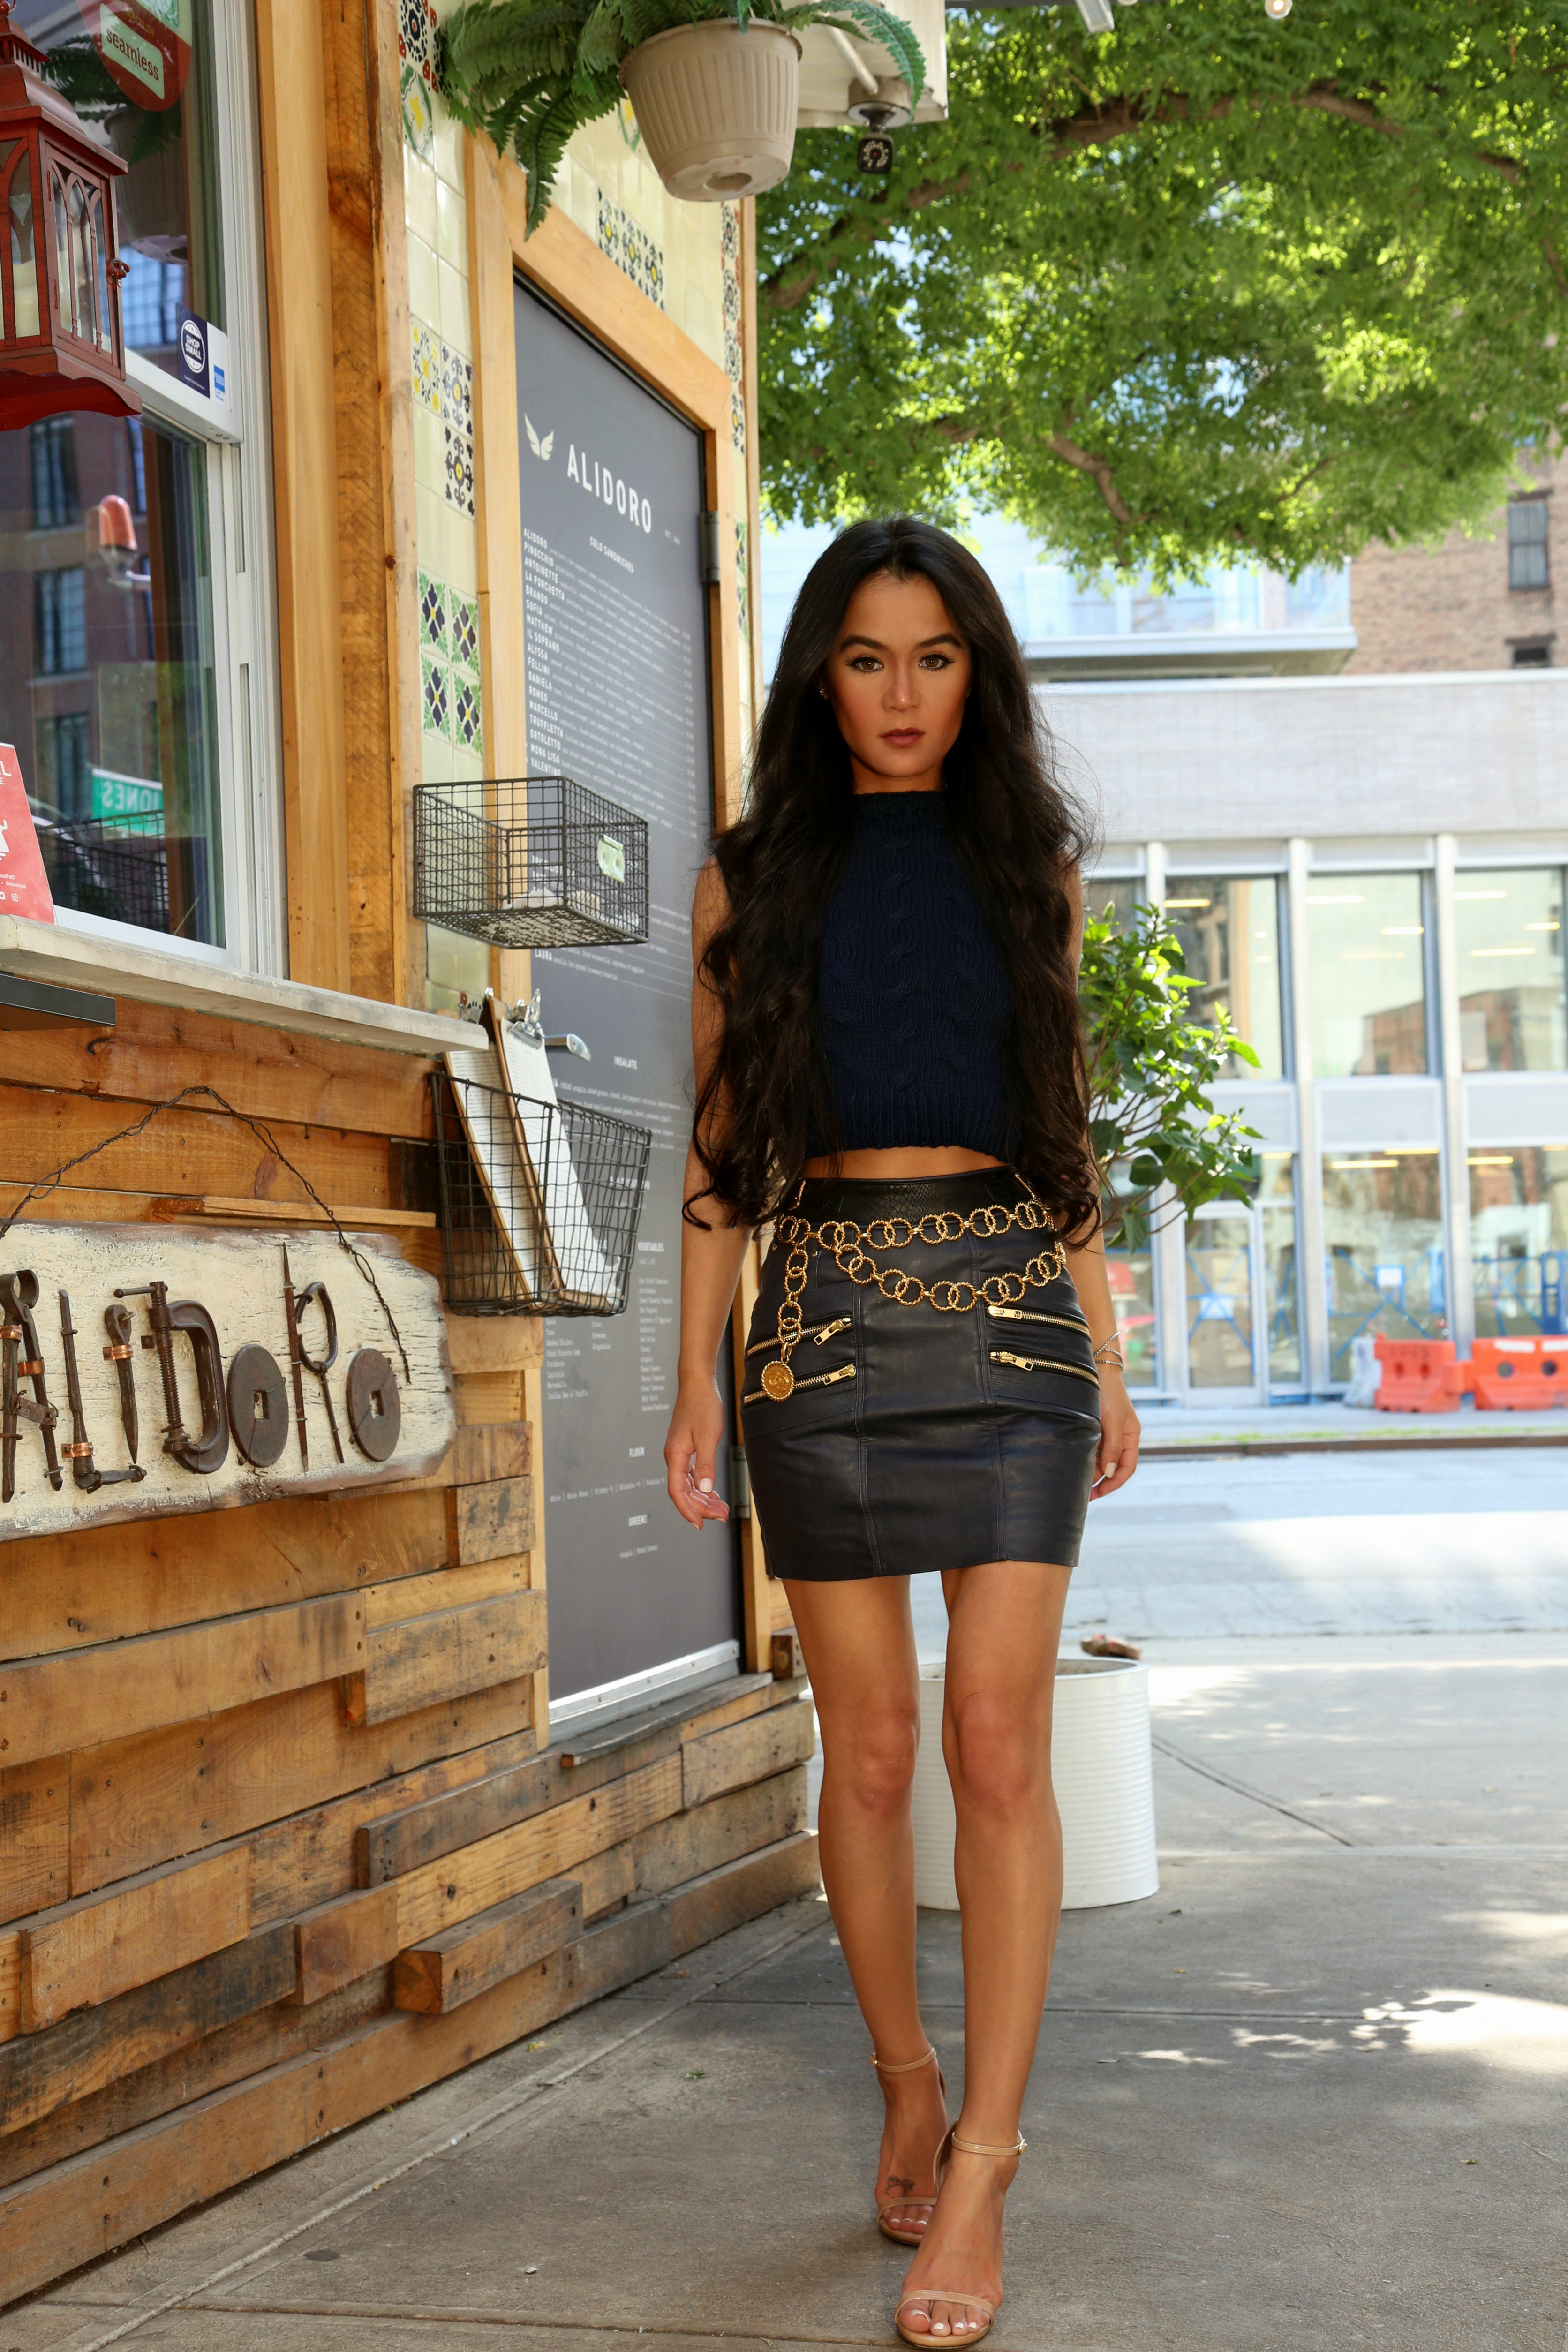 NYC Style Blogger Annamaria Stewart wearing a cropped cable sweater by Maria Dora, Self-Portrait navy leather moto skirt, vintage gold 90s Chanel chain belt, and Stuart Weitzman Nudist Sandals, pictured at The Bowery Market in NYC - The Shopping Patch